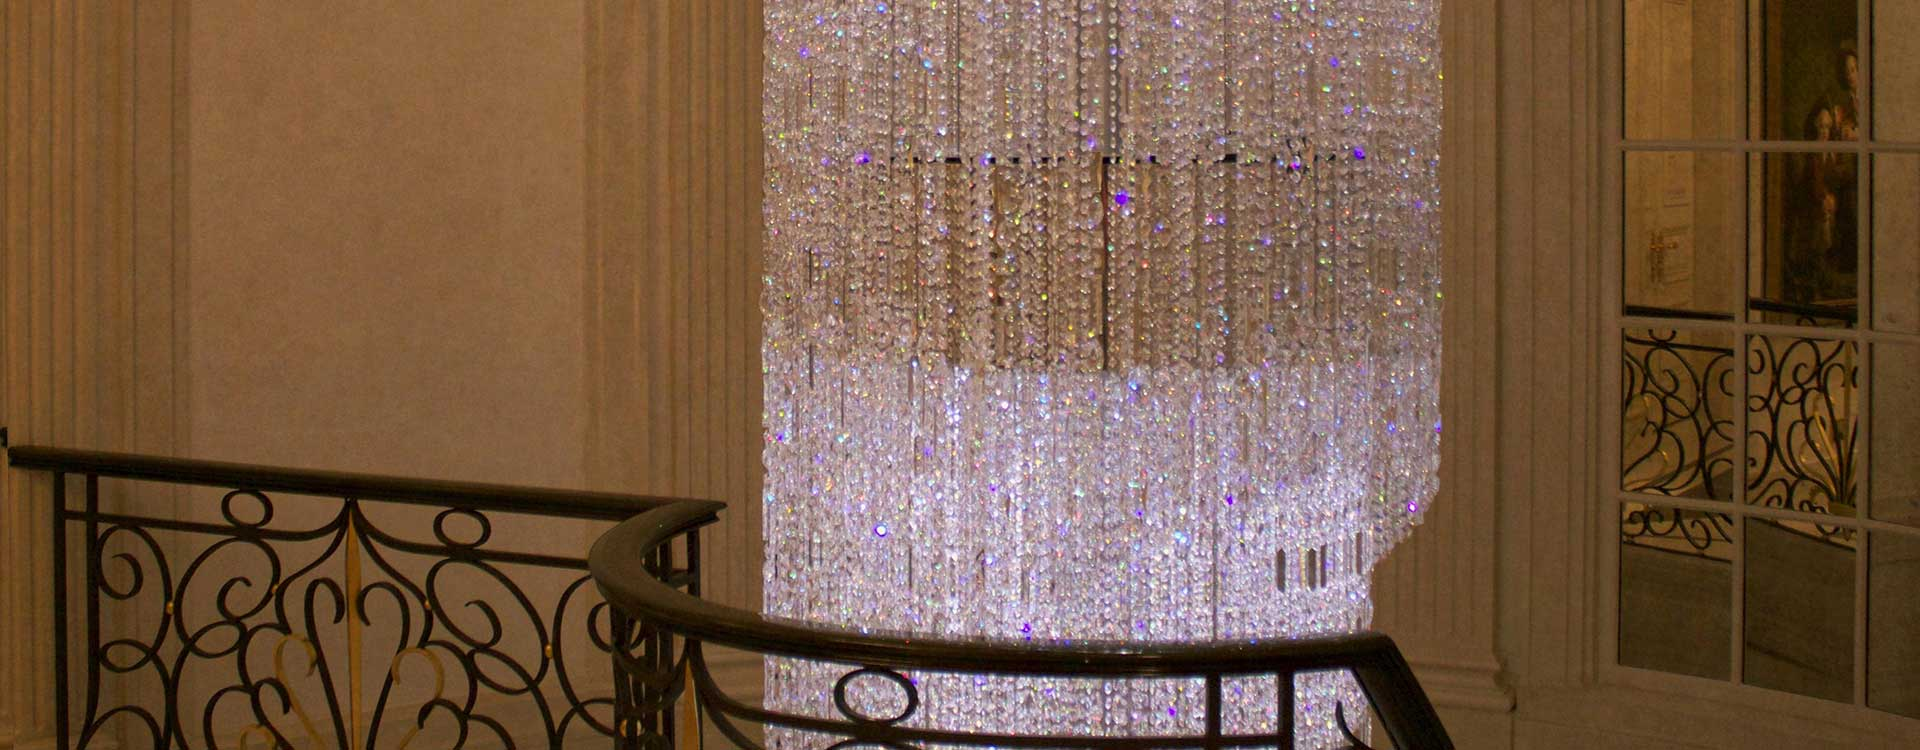 fibre optic chandelier in the walpole residence